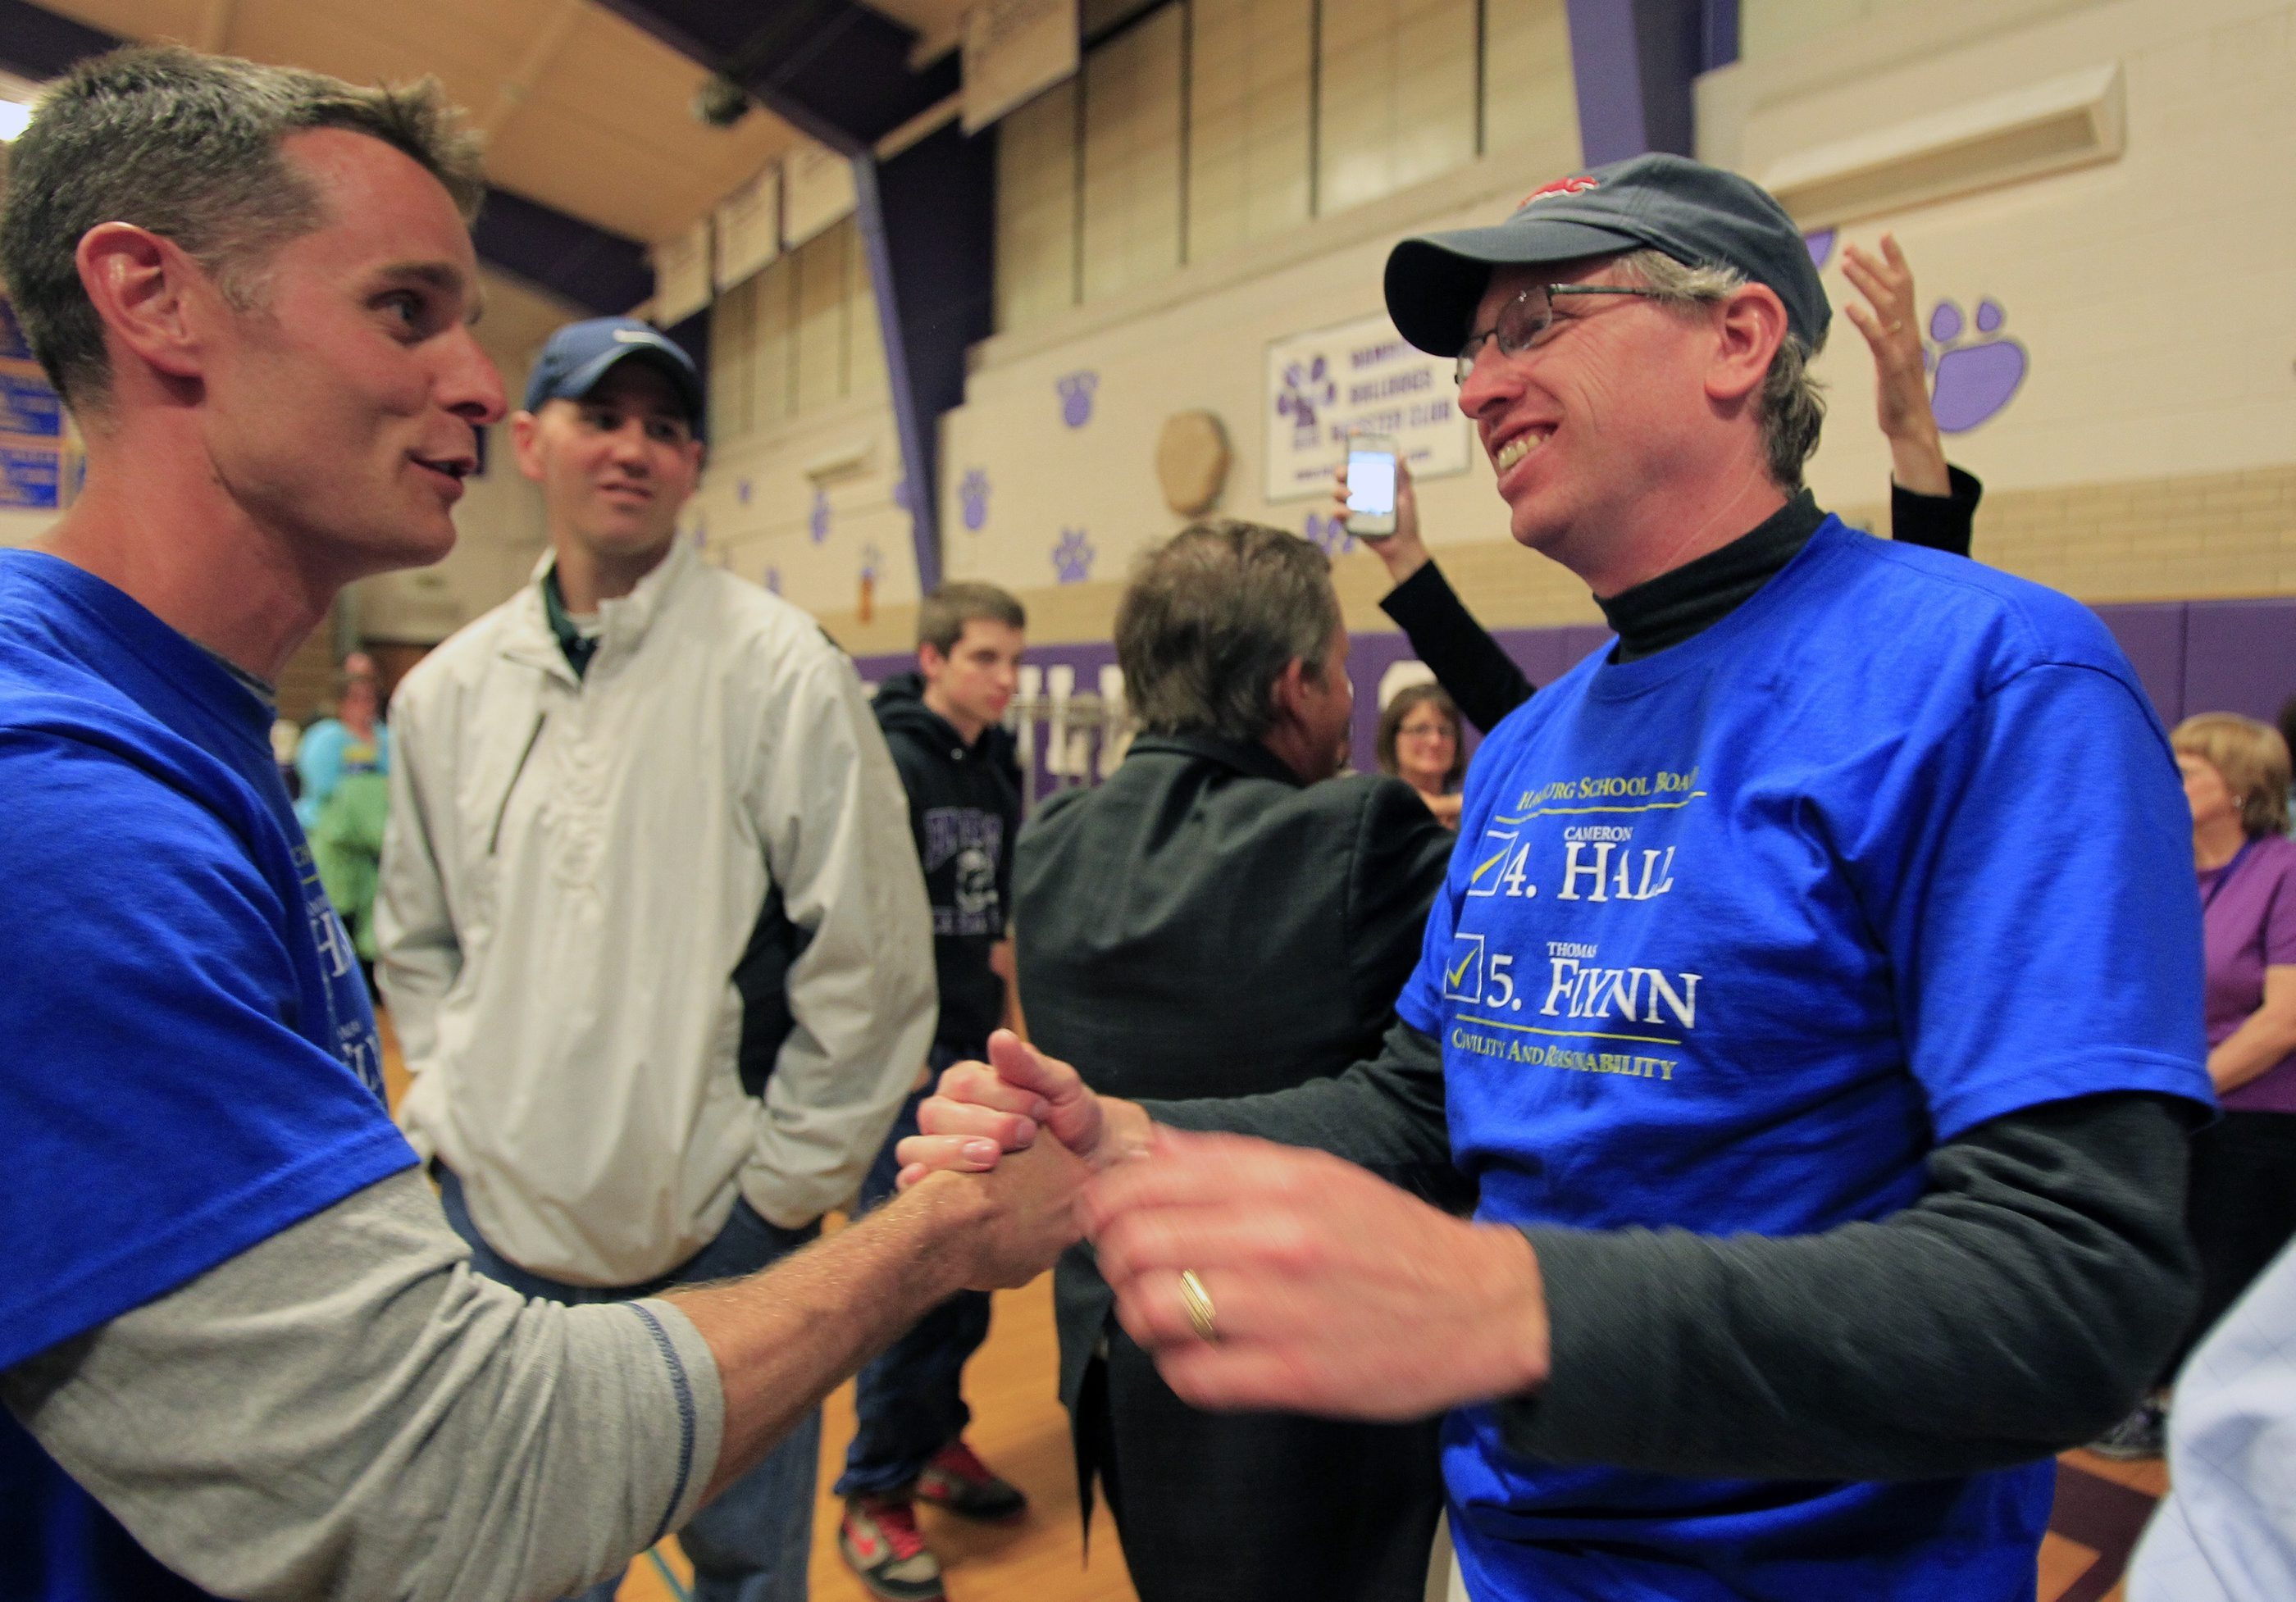 Victorious newcomer Cameron Hall, left, congratulates incumbent Hamburg School Board member Thomas Flynn on his reelection to the board. The two ran together and were backed by Hamburg attorney and parent Daniel J. Chiacchia. (Photo by Harry Scull Jr. /Buffalo News)